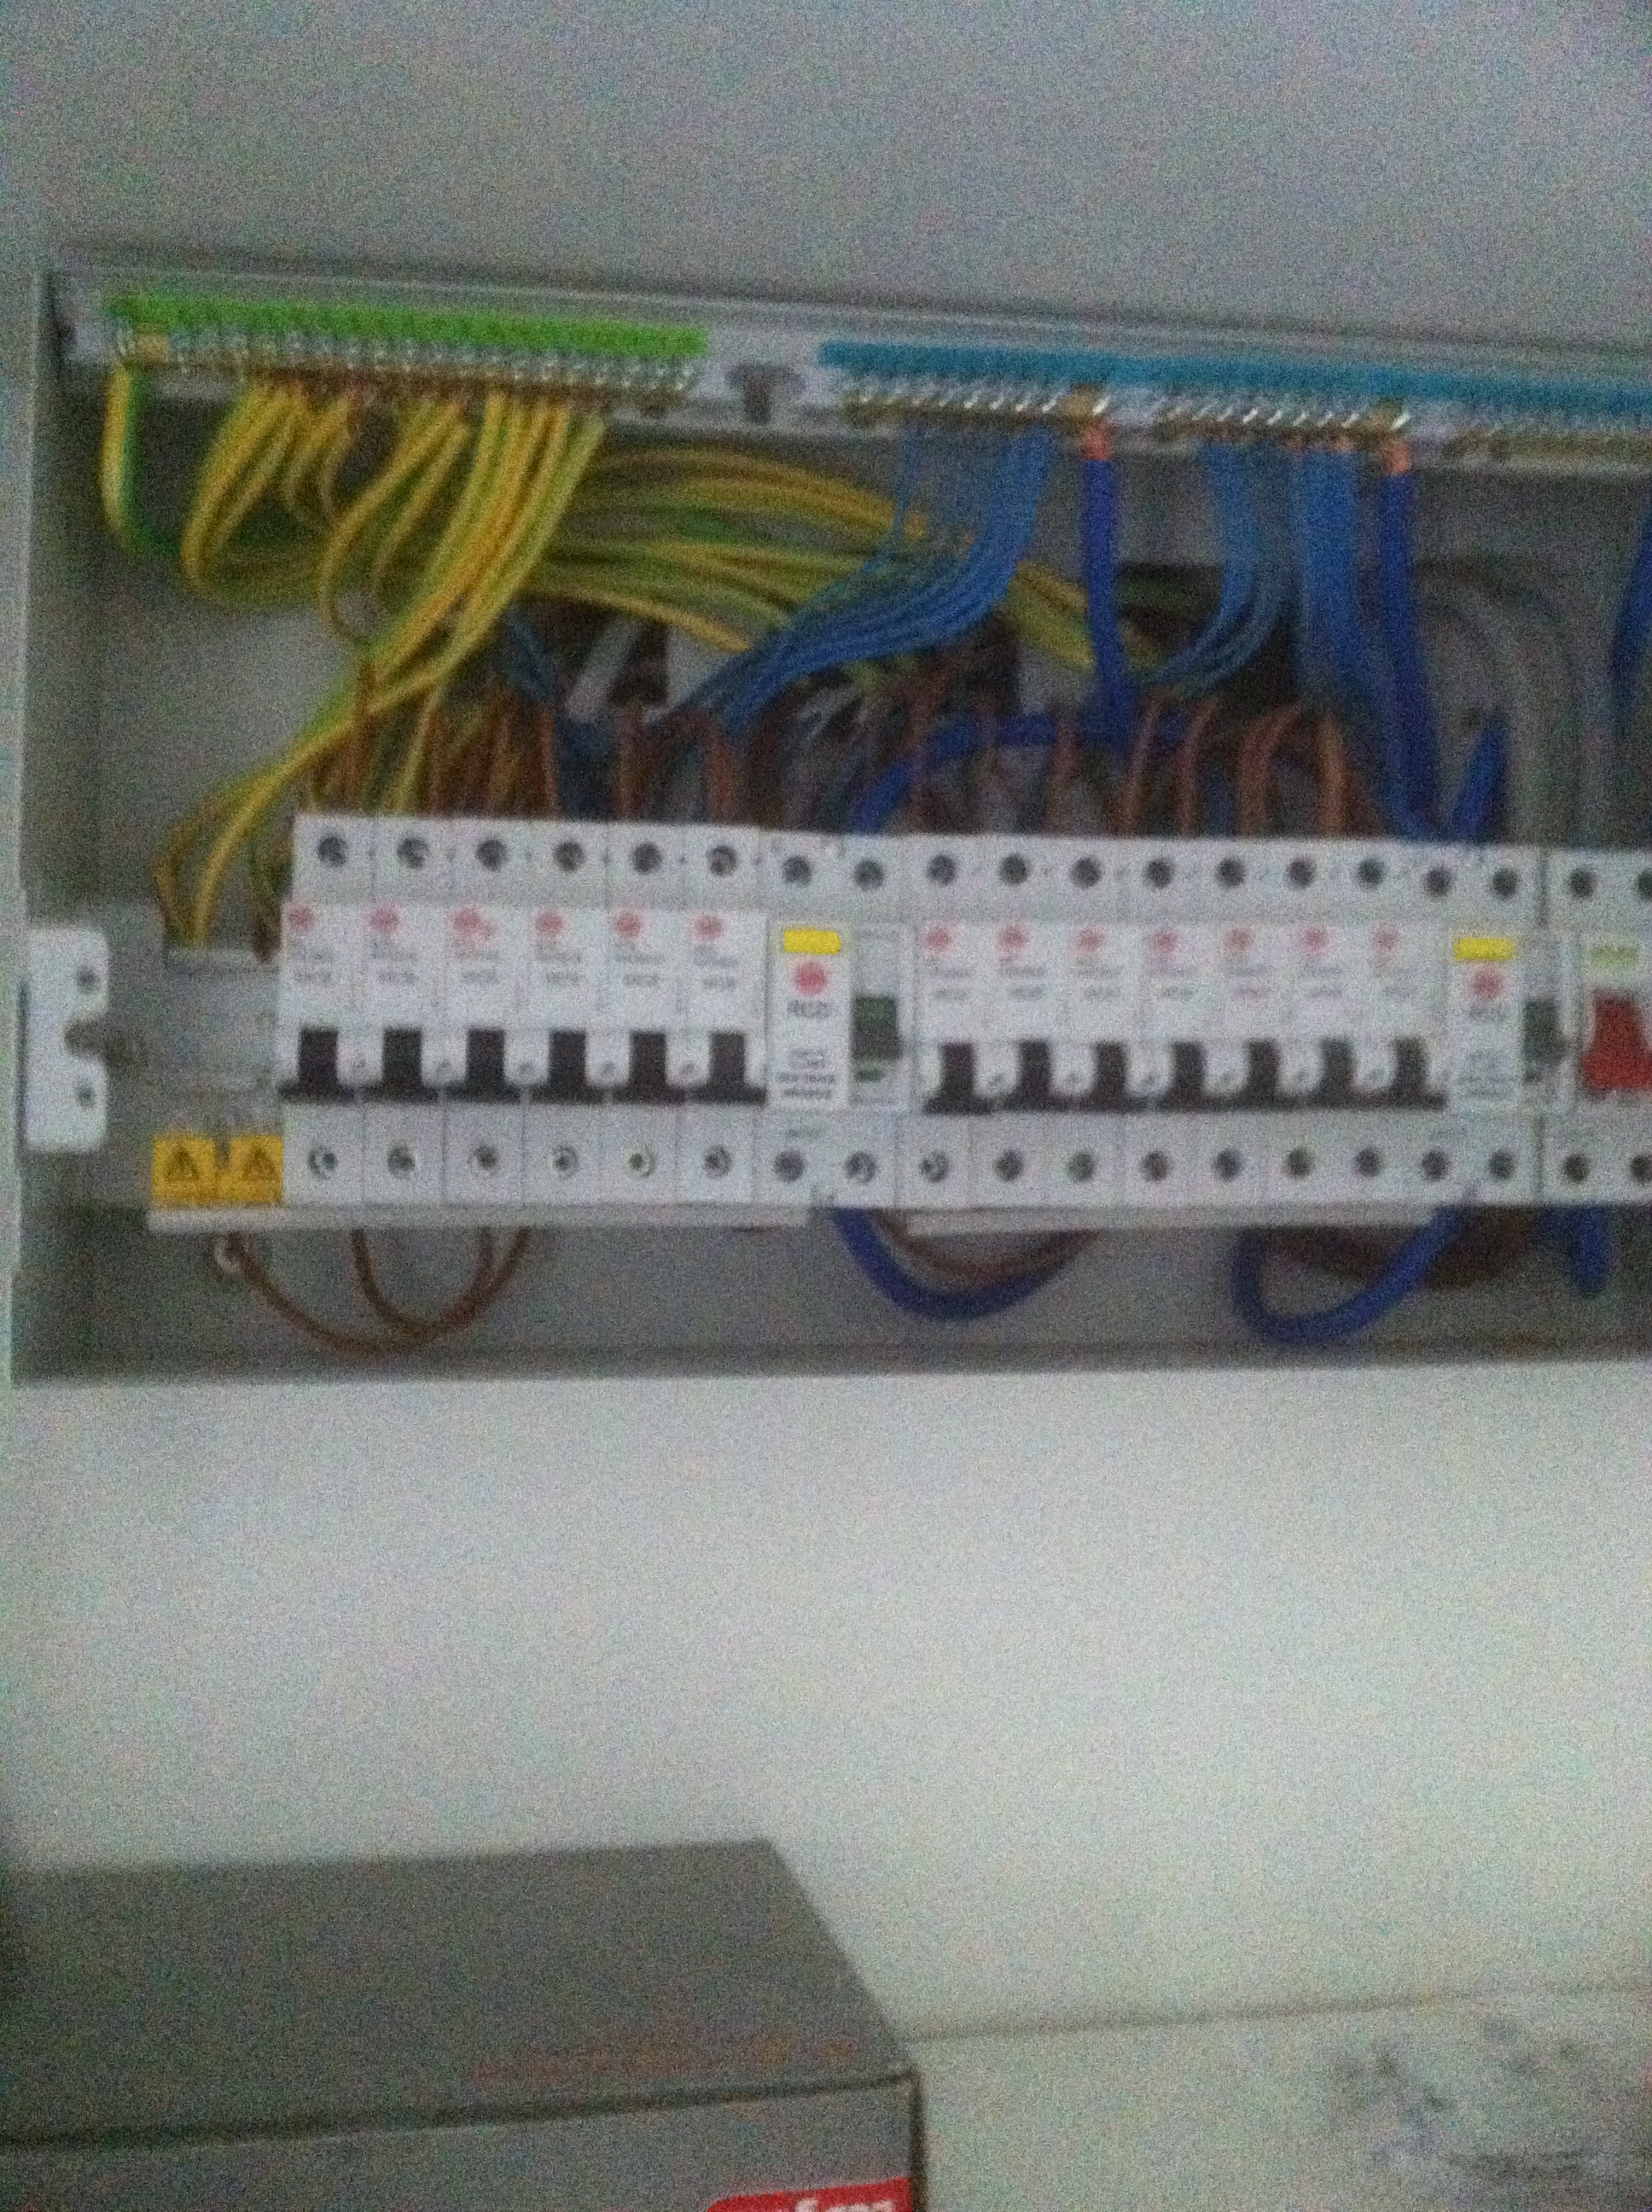 Iet Wiring And The Regulations Rcd In Parallel